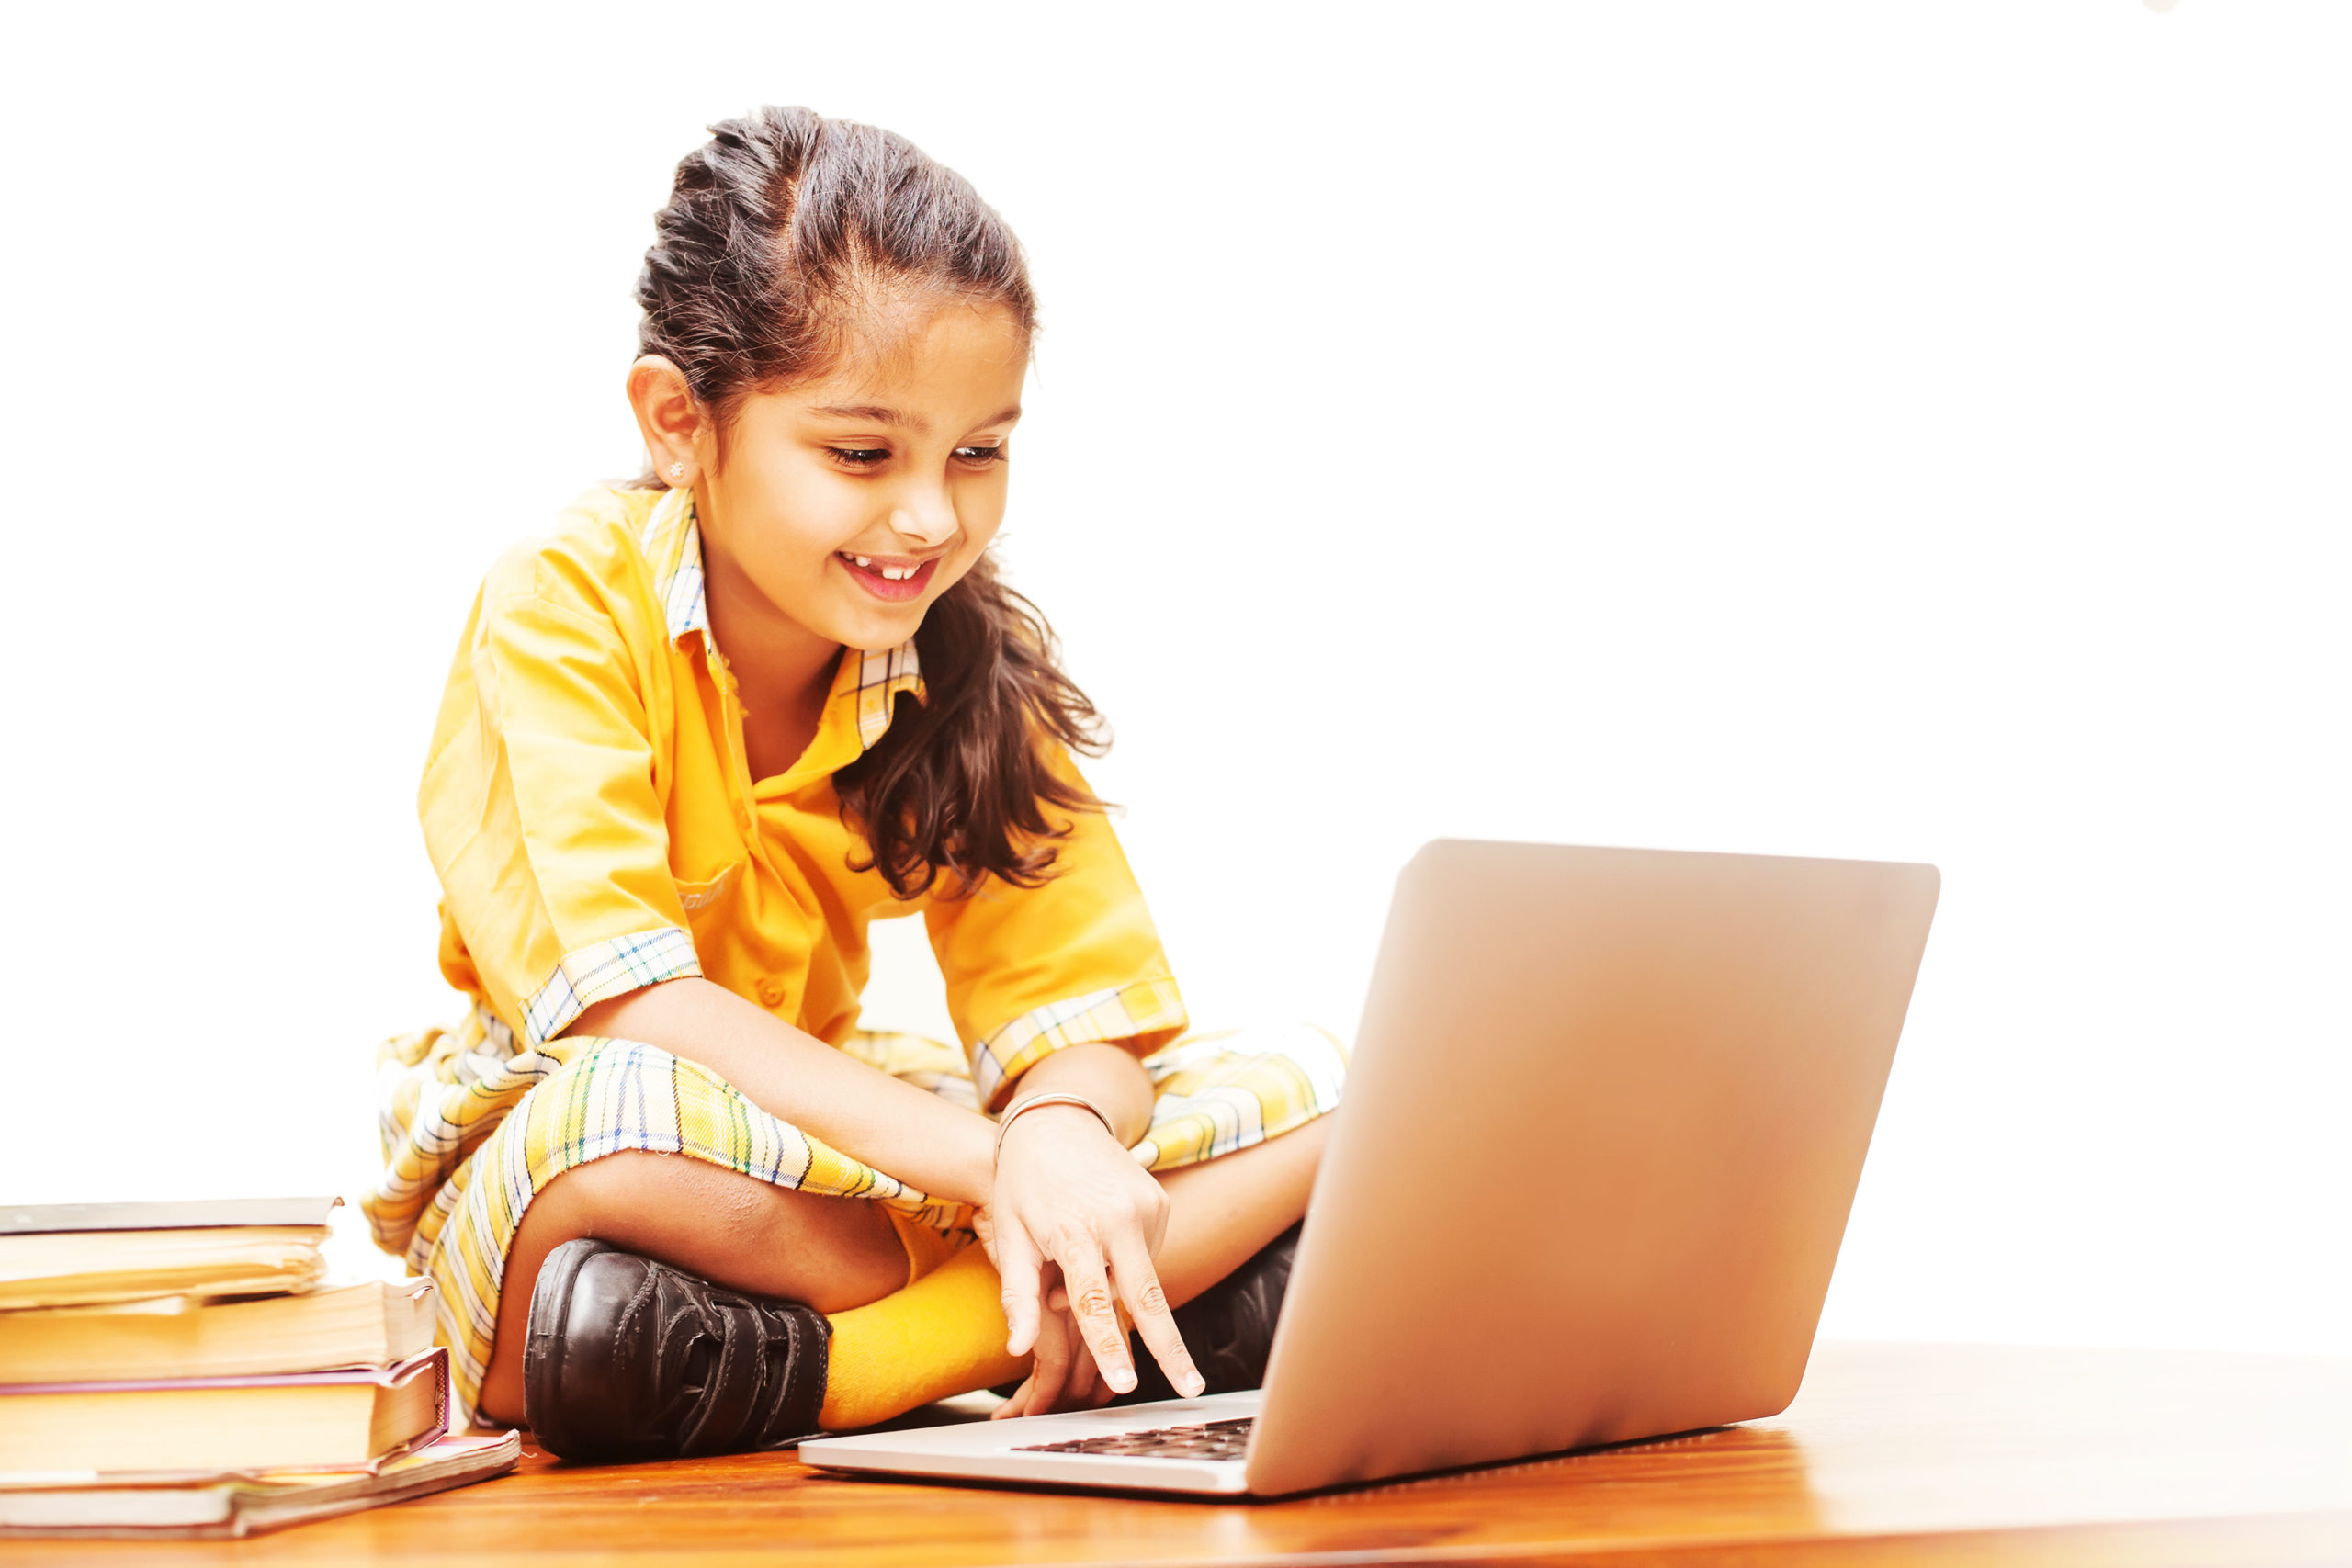 Online supplemental education can help elementary students stay connected and on track.